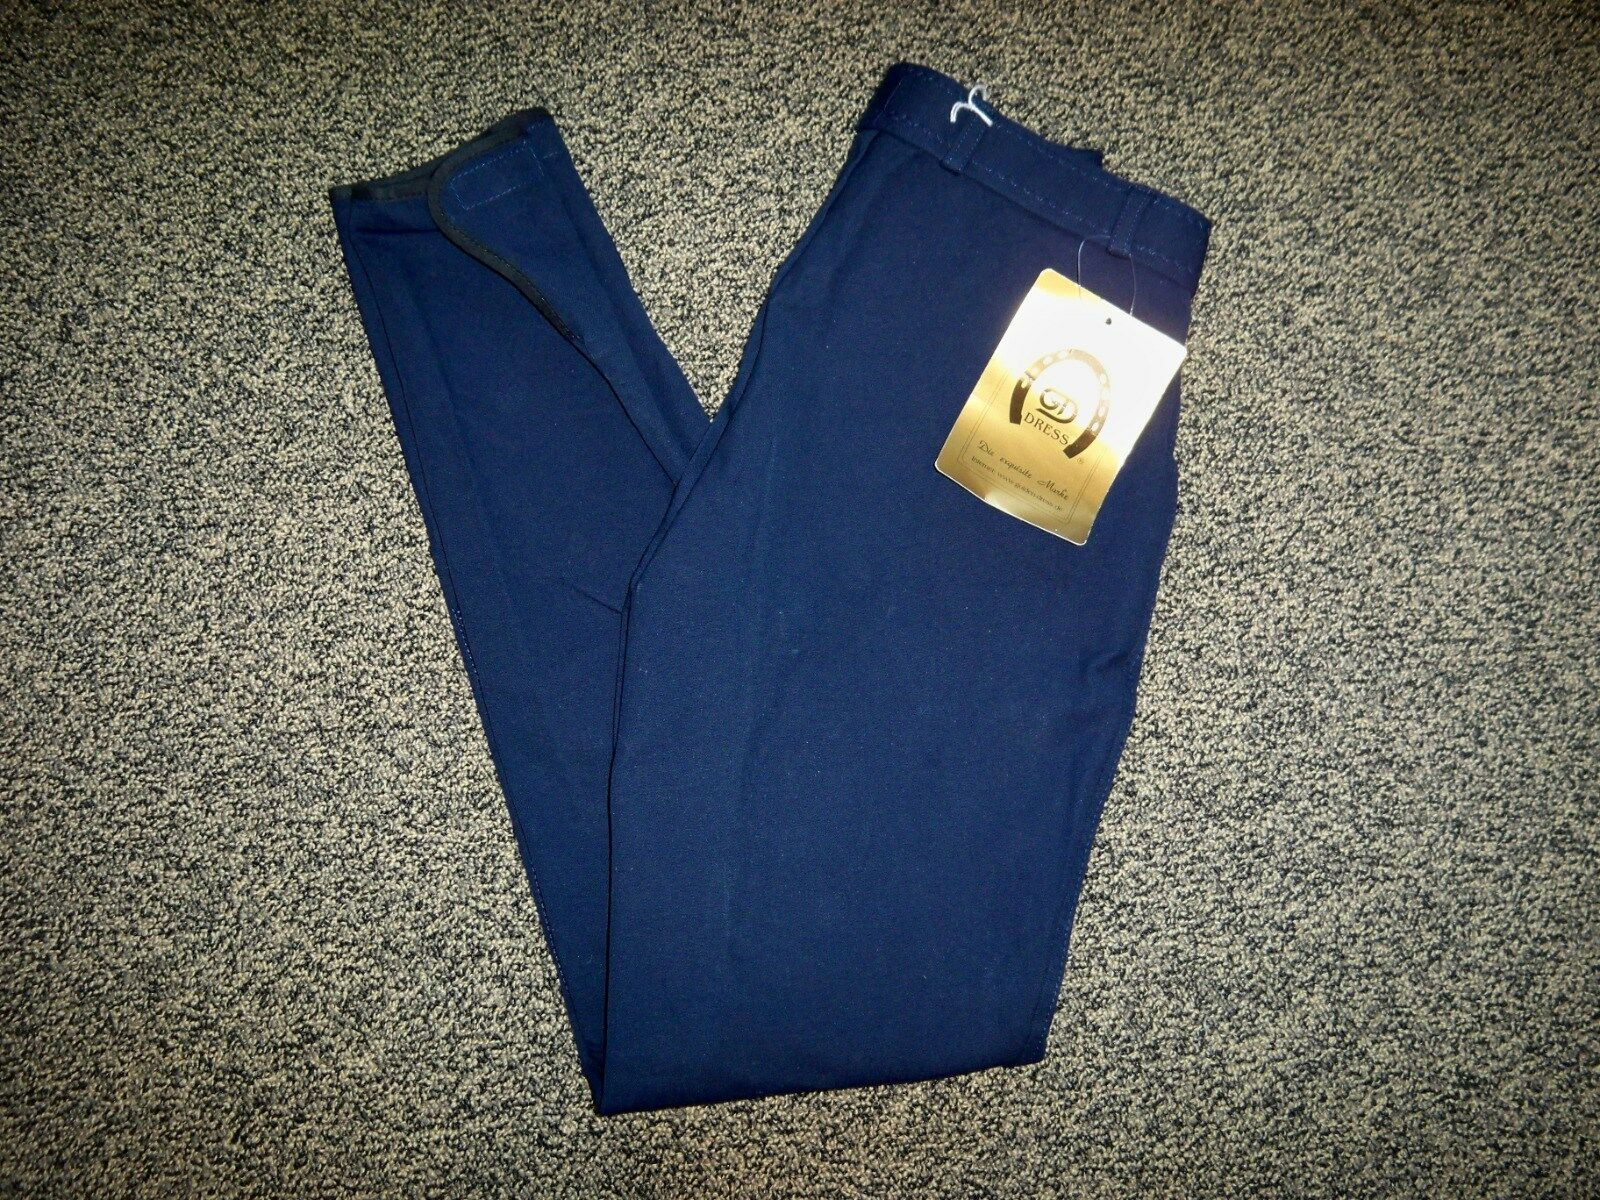 NWT golden Dress RIDING Breeches Navy bluee Suede Knee Patches Size Ladies 22 L